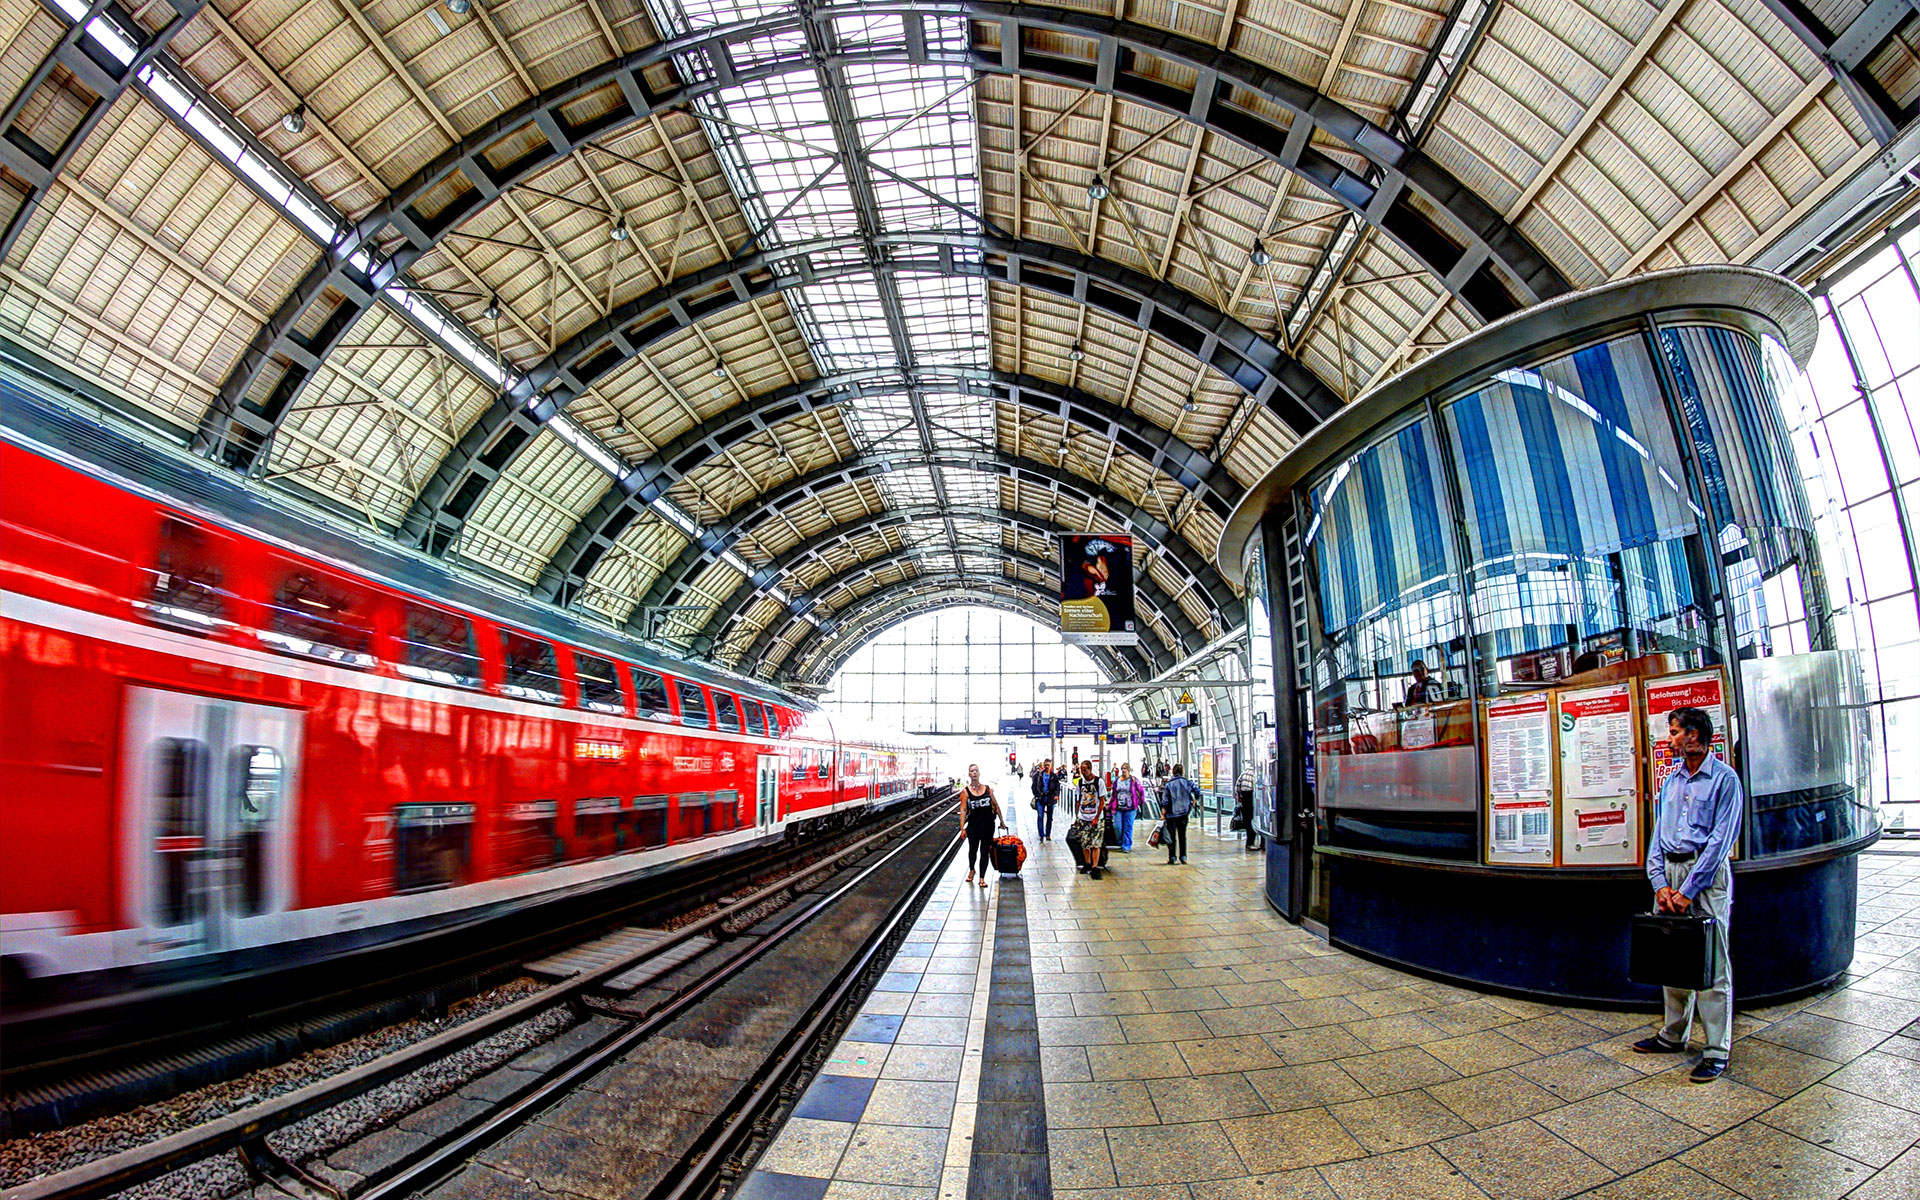 One of Deutsche Bahn's red regional double-deck trains dashing through a Berlin station (photo © Andrea Calistri).